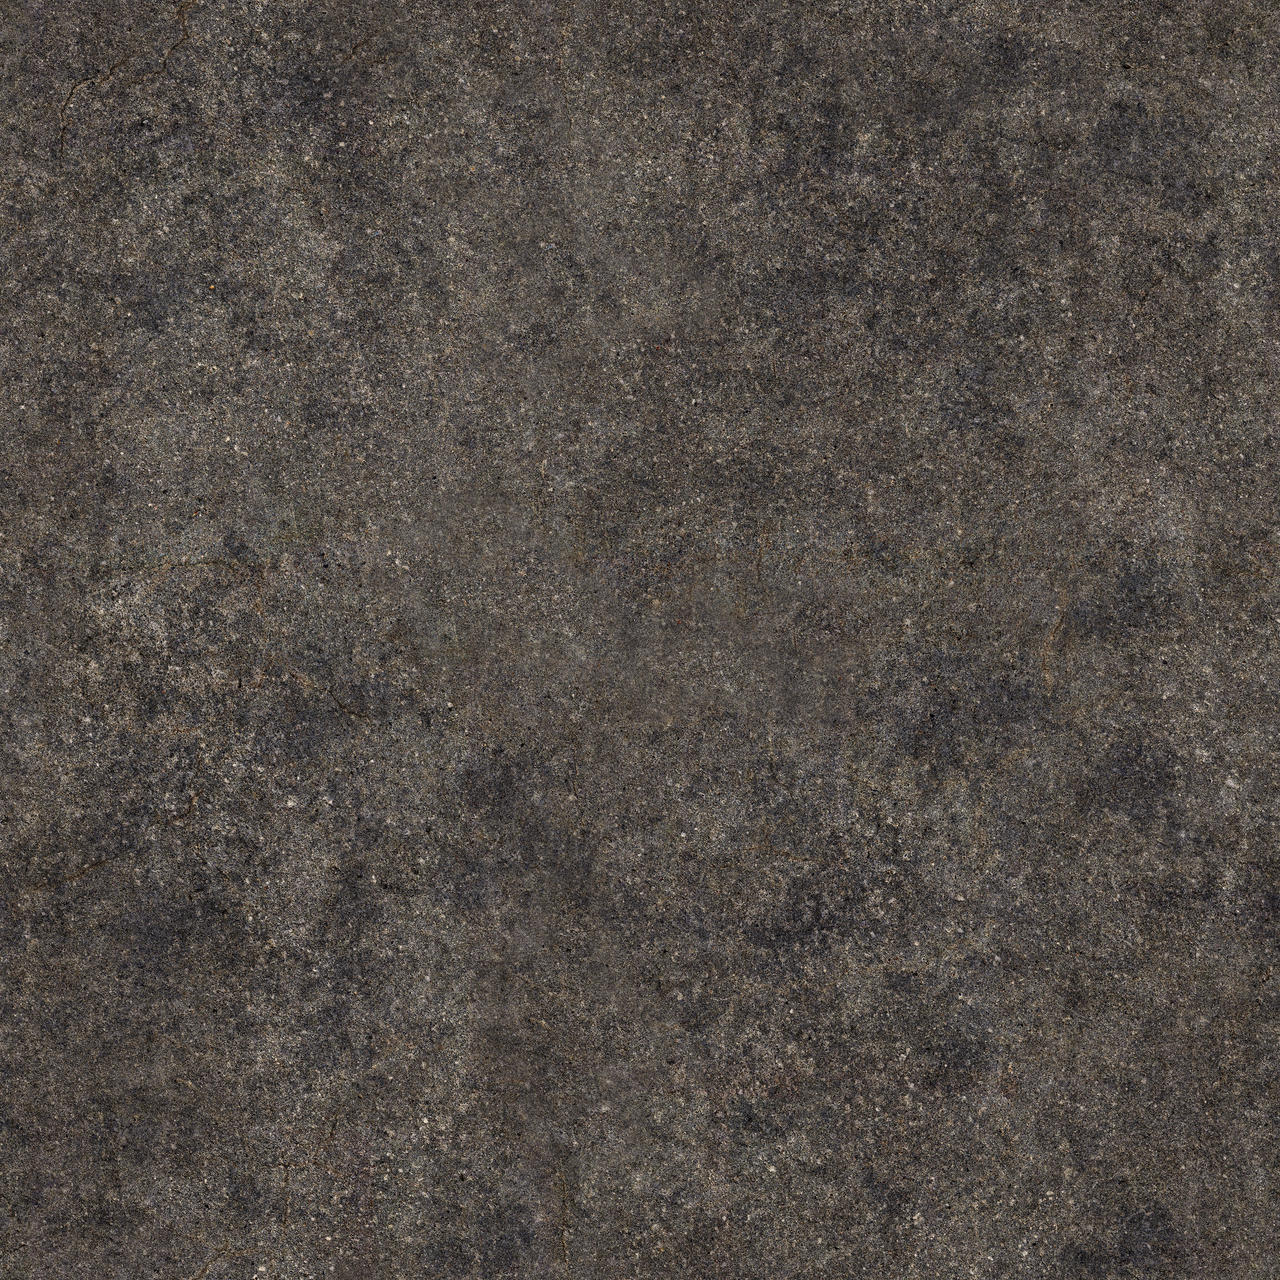 very high resolution concrete texture